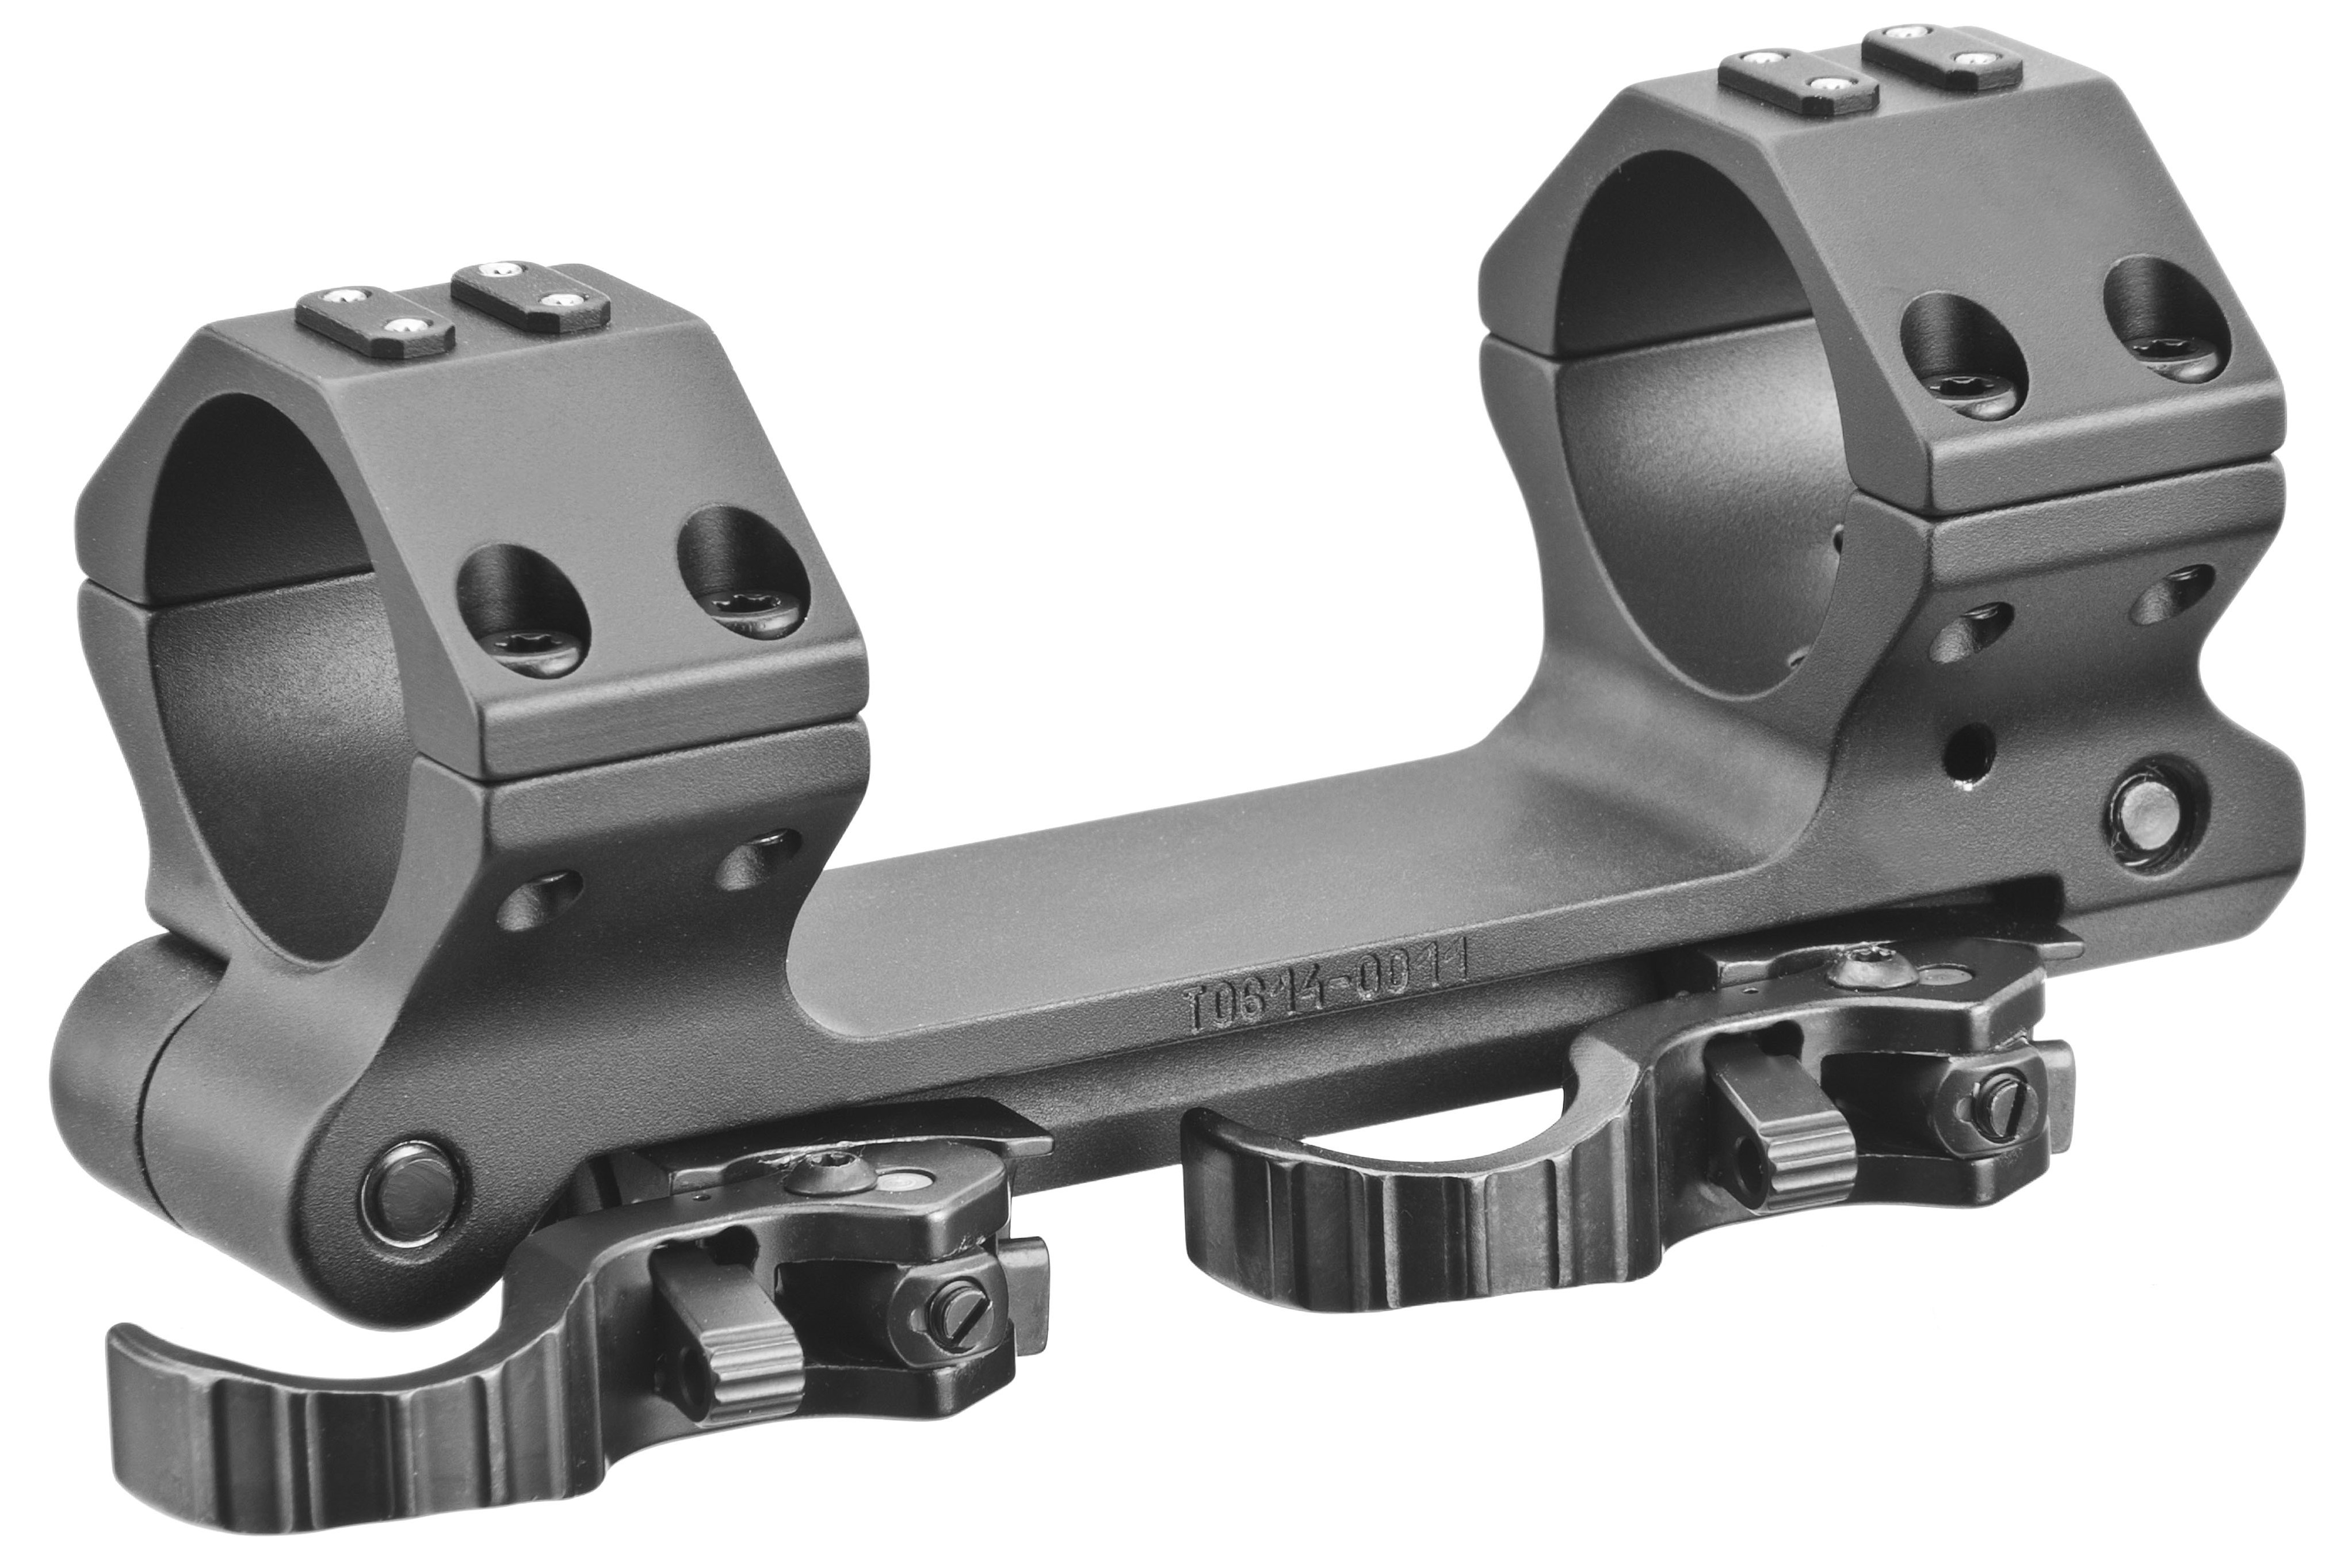 ERATAC Adjustable Inclination Mount w/ Levers